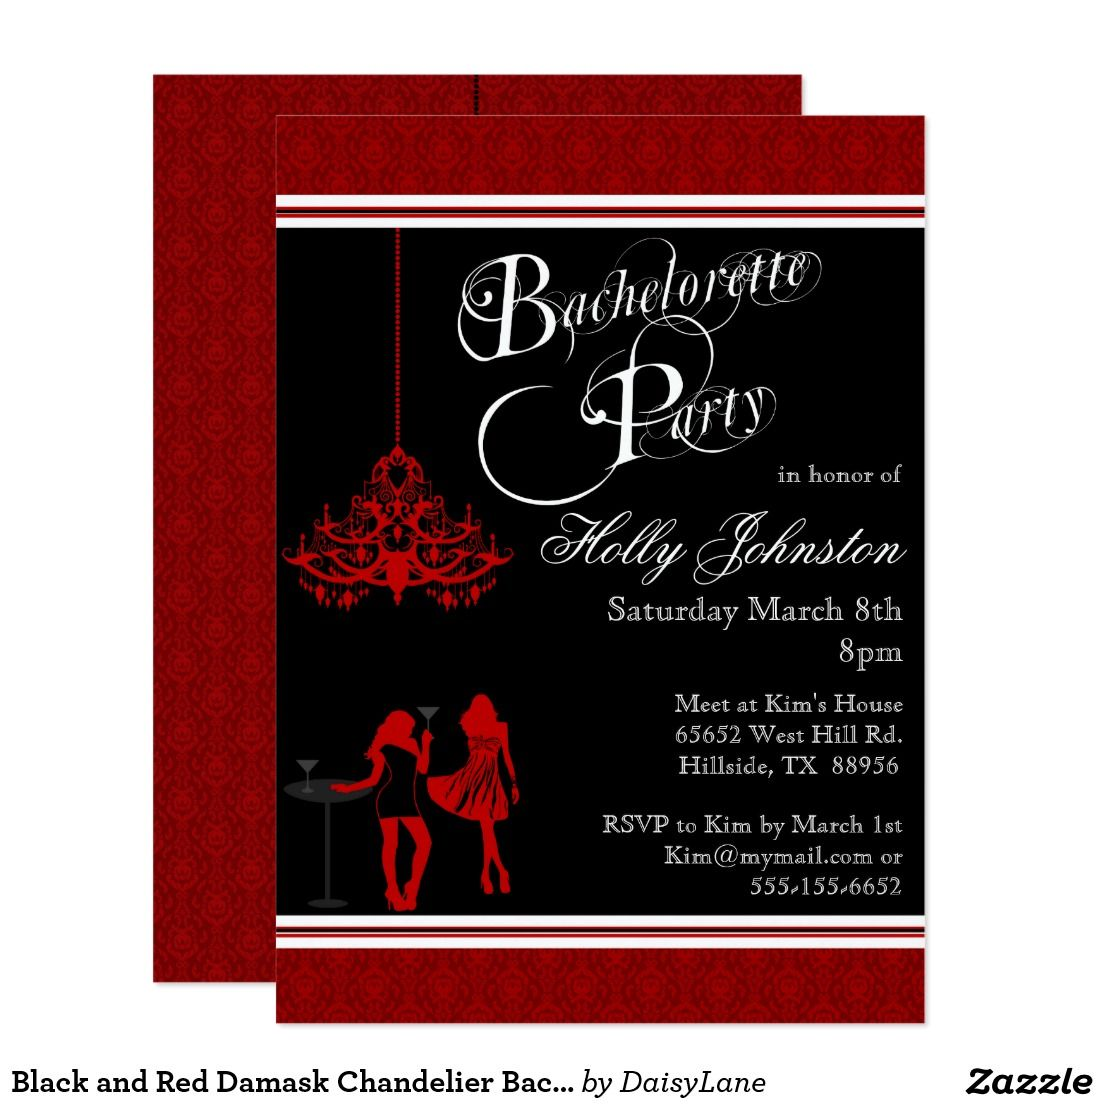 Black and Red Damask Chandelier Bachelorette Party Invitation ...